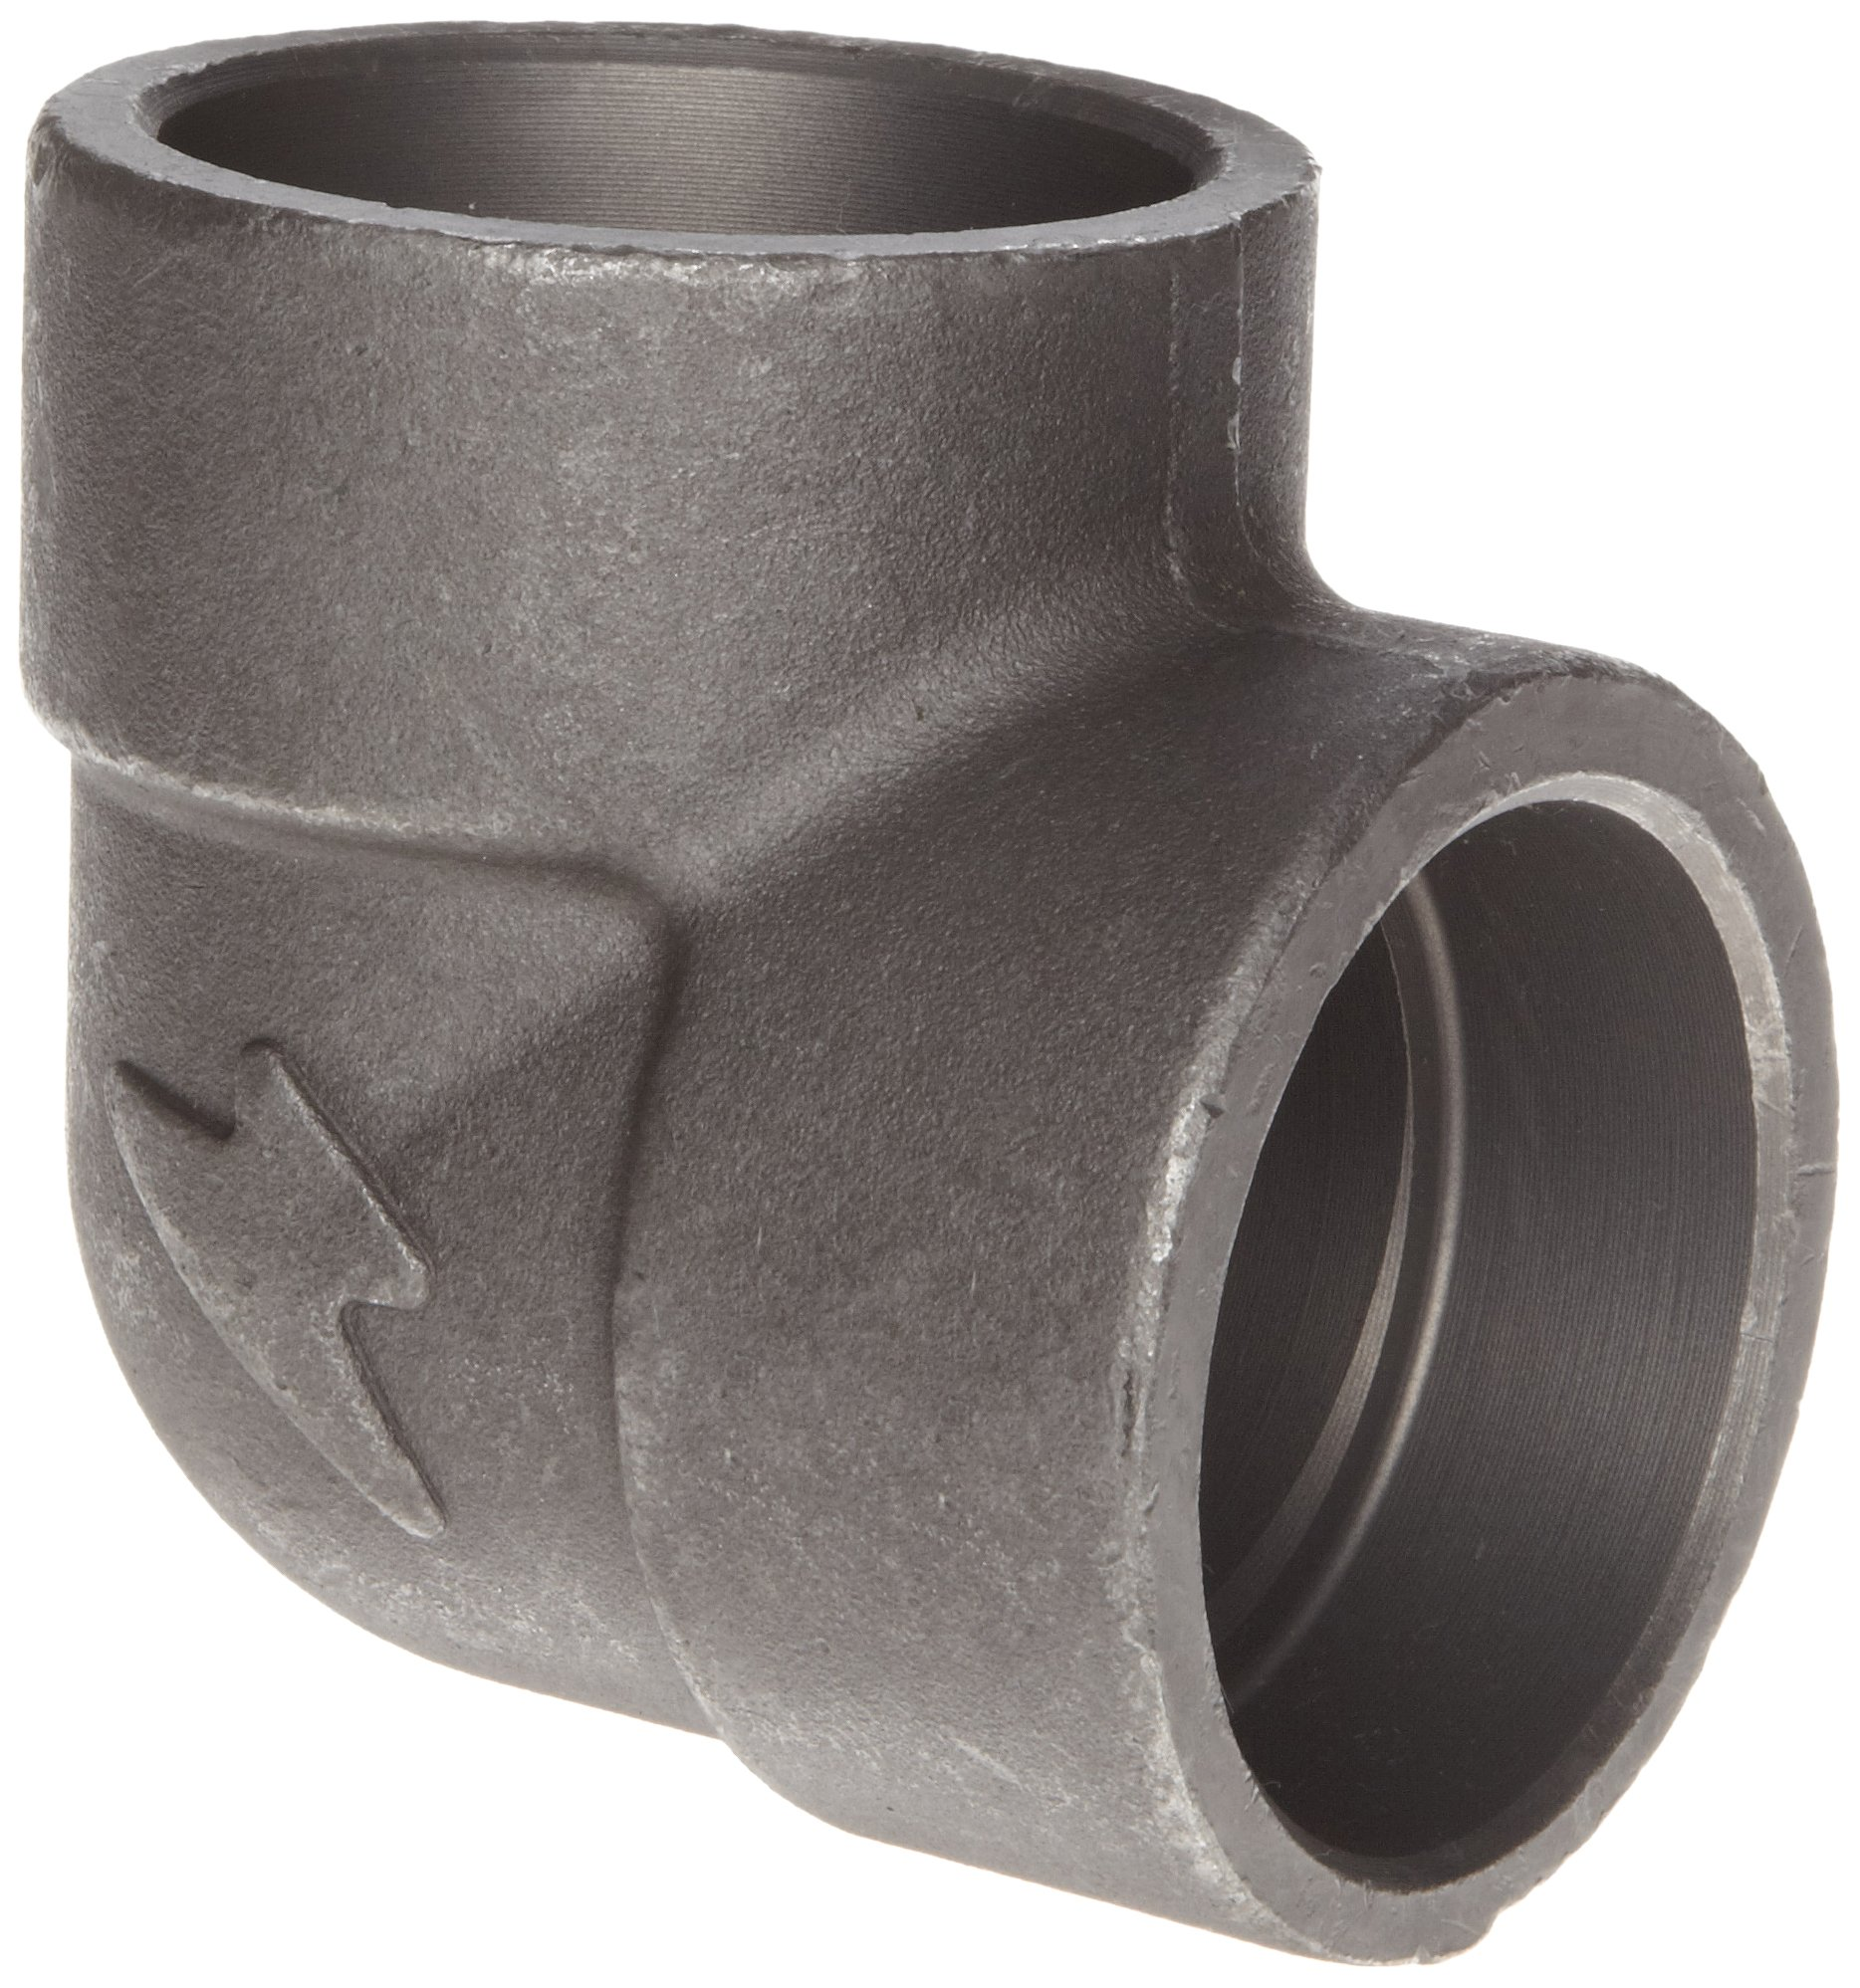 Anvil 2150 Forged Steel Pipe Fitting, Class 3000, Socket Weld 90 Degree Elbow, 3'' NPT Female